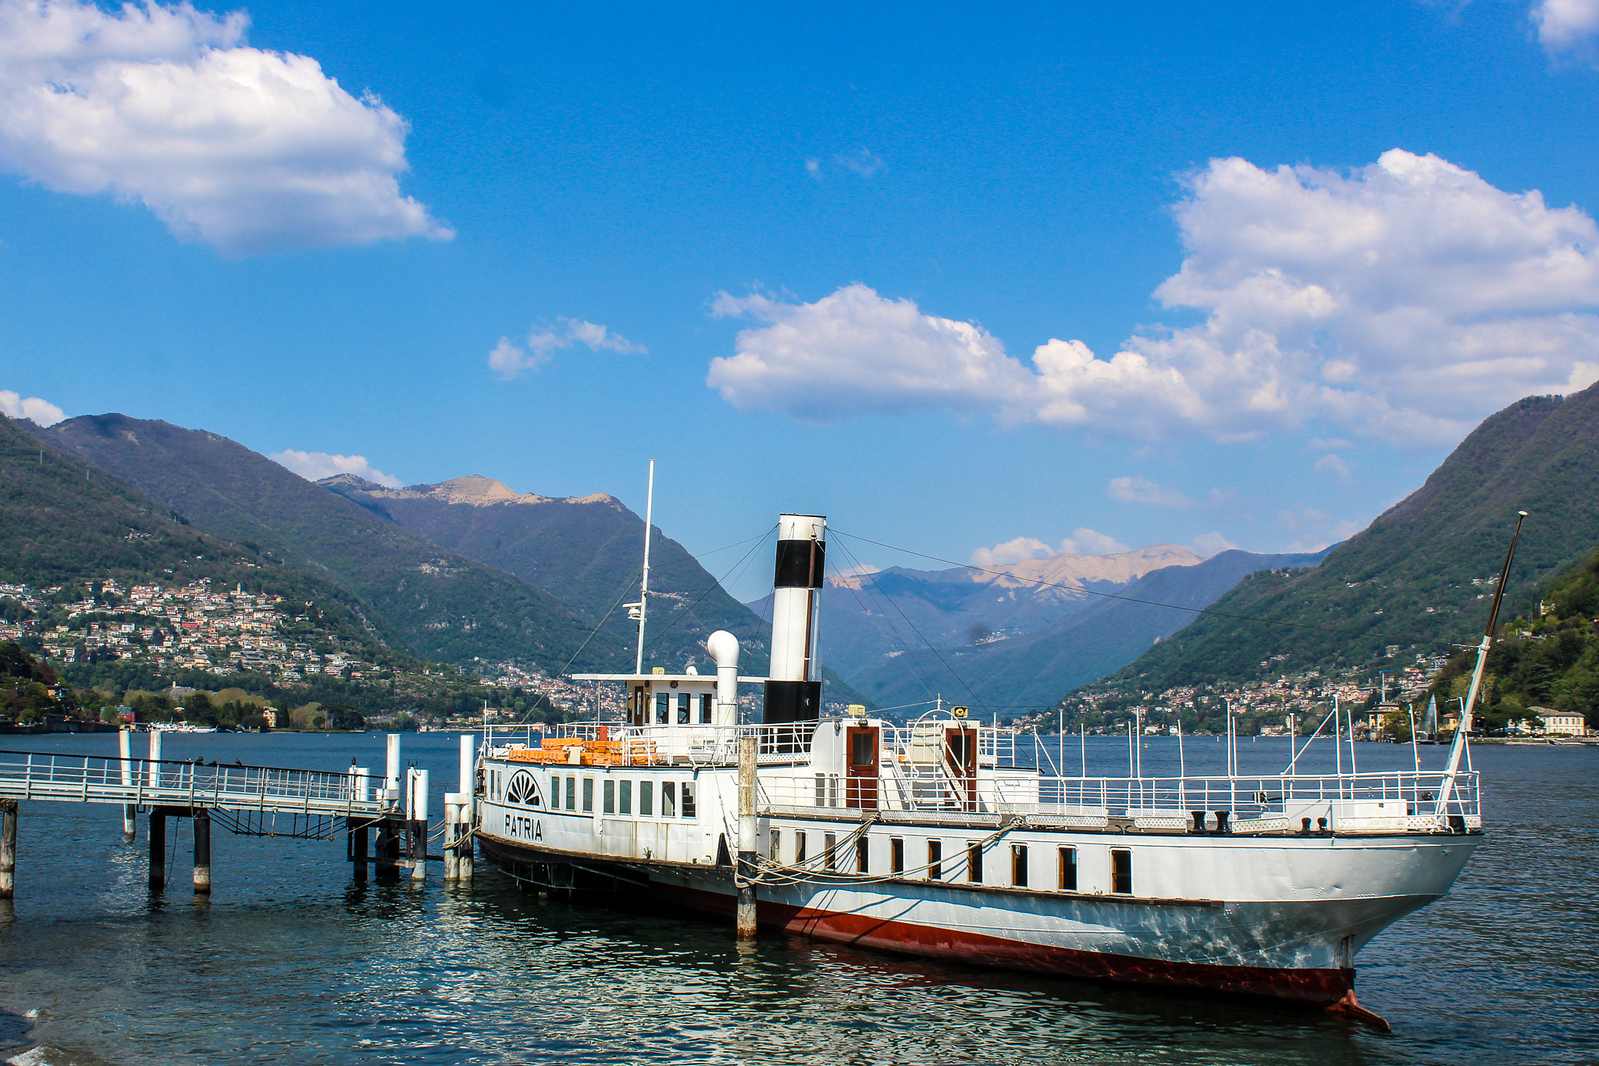 day trip lake como from milan requires taking ferries